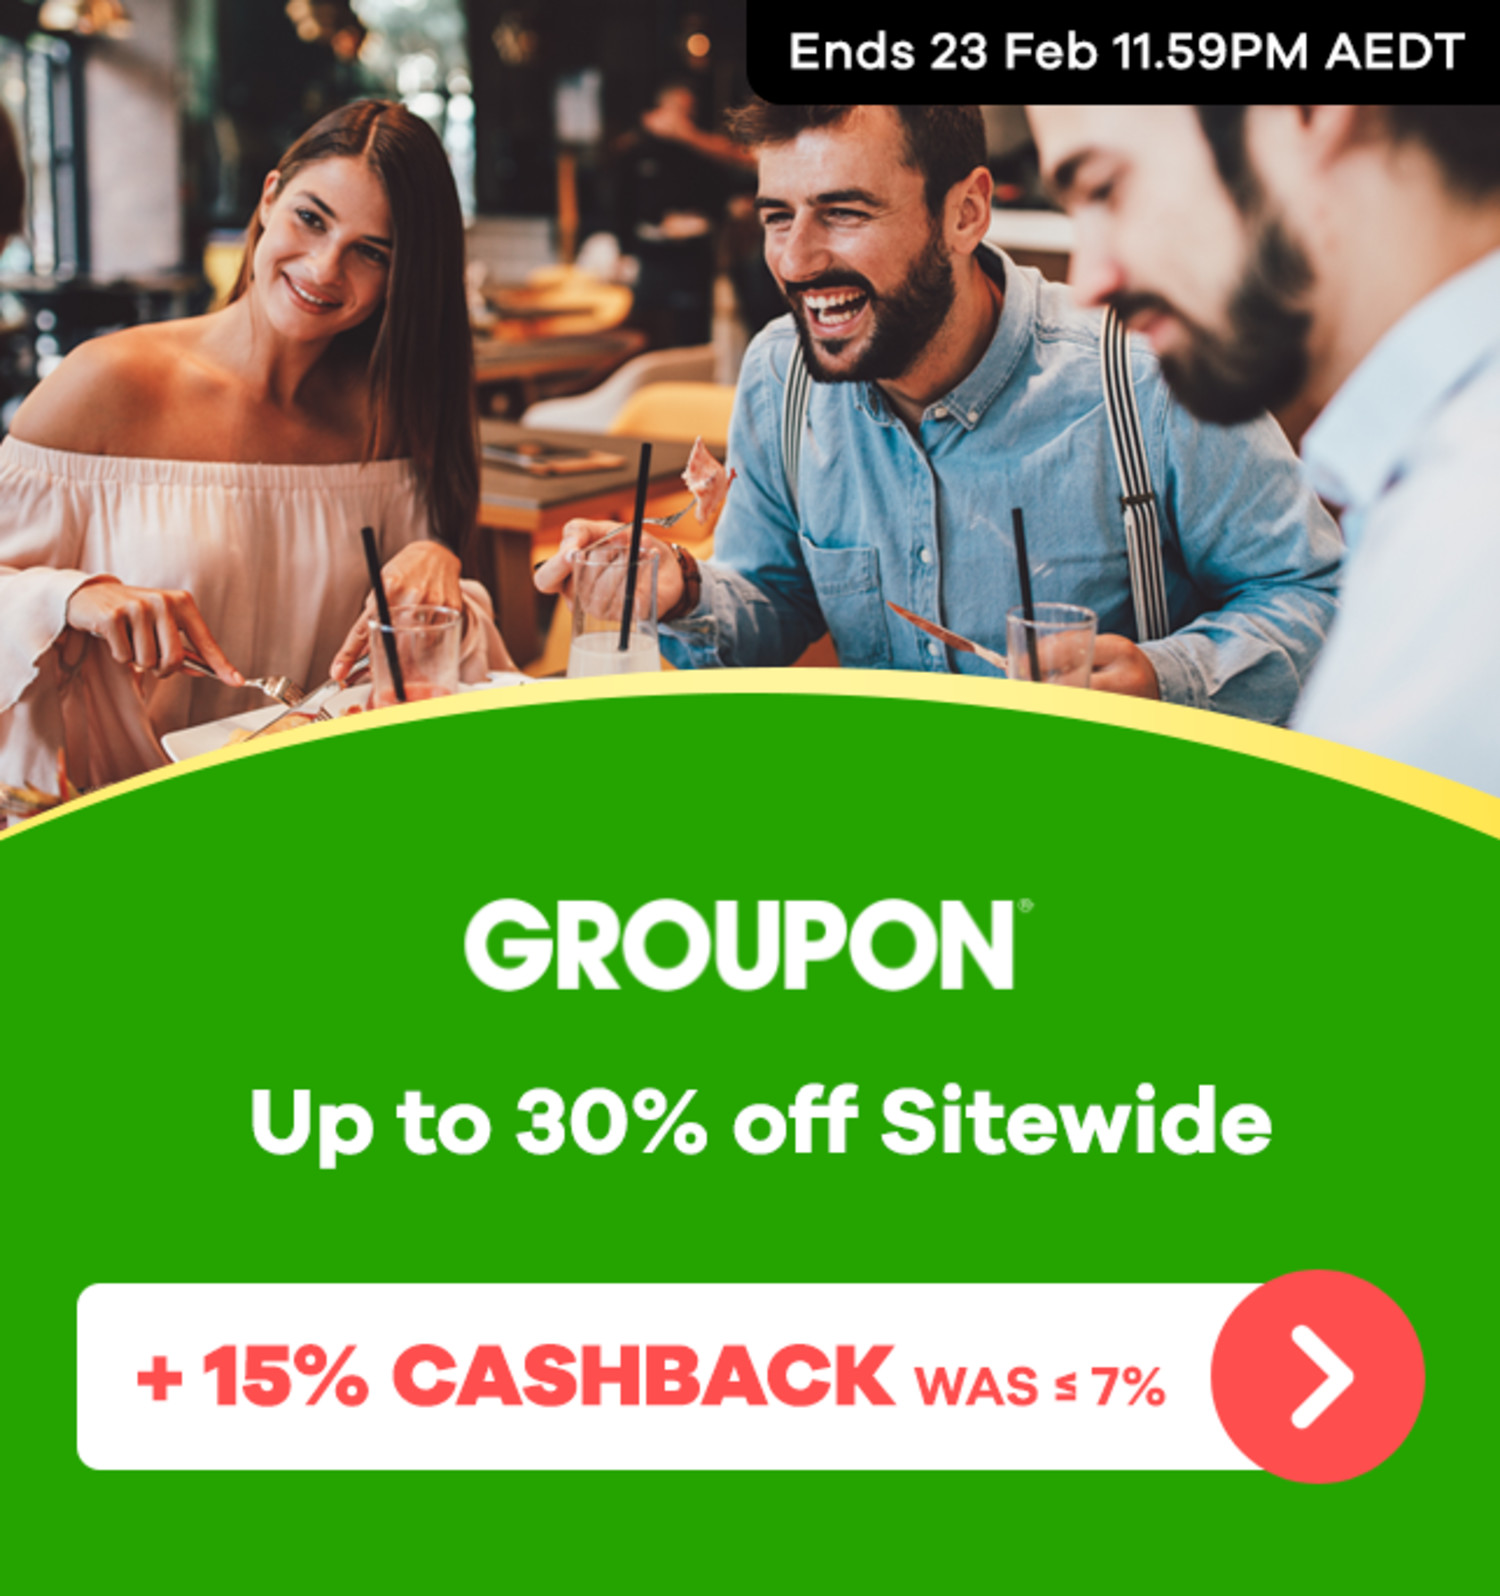 Groupon - Up to 30% off Sitewide & 15% Upsized Cashback